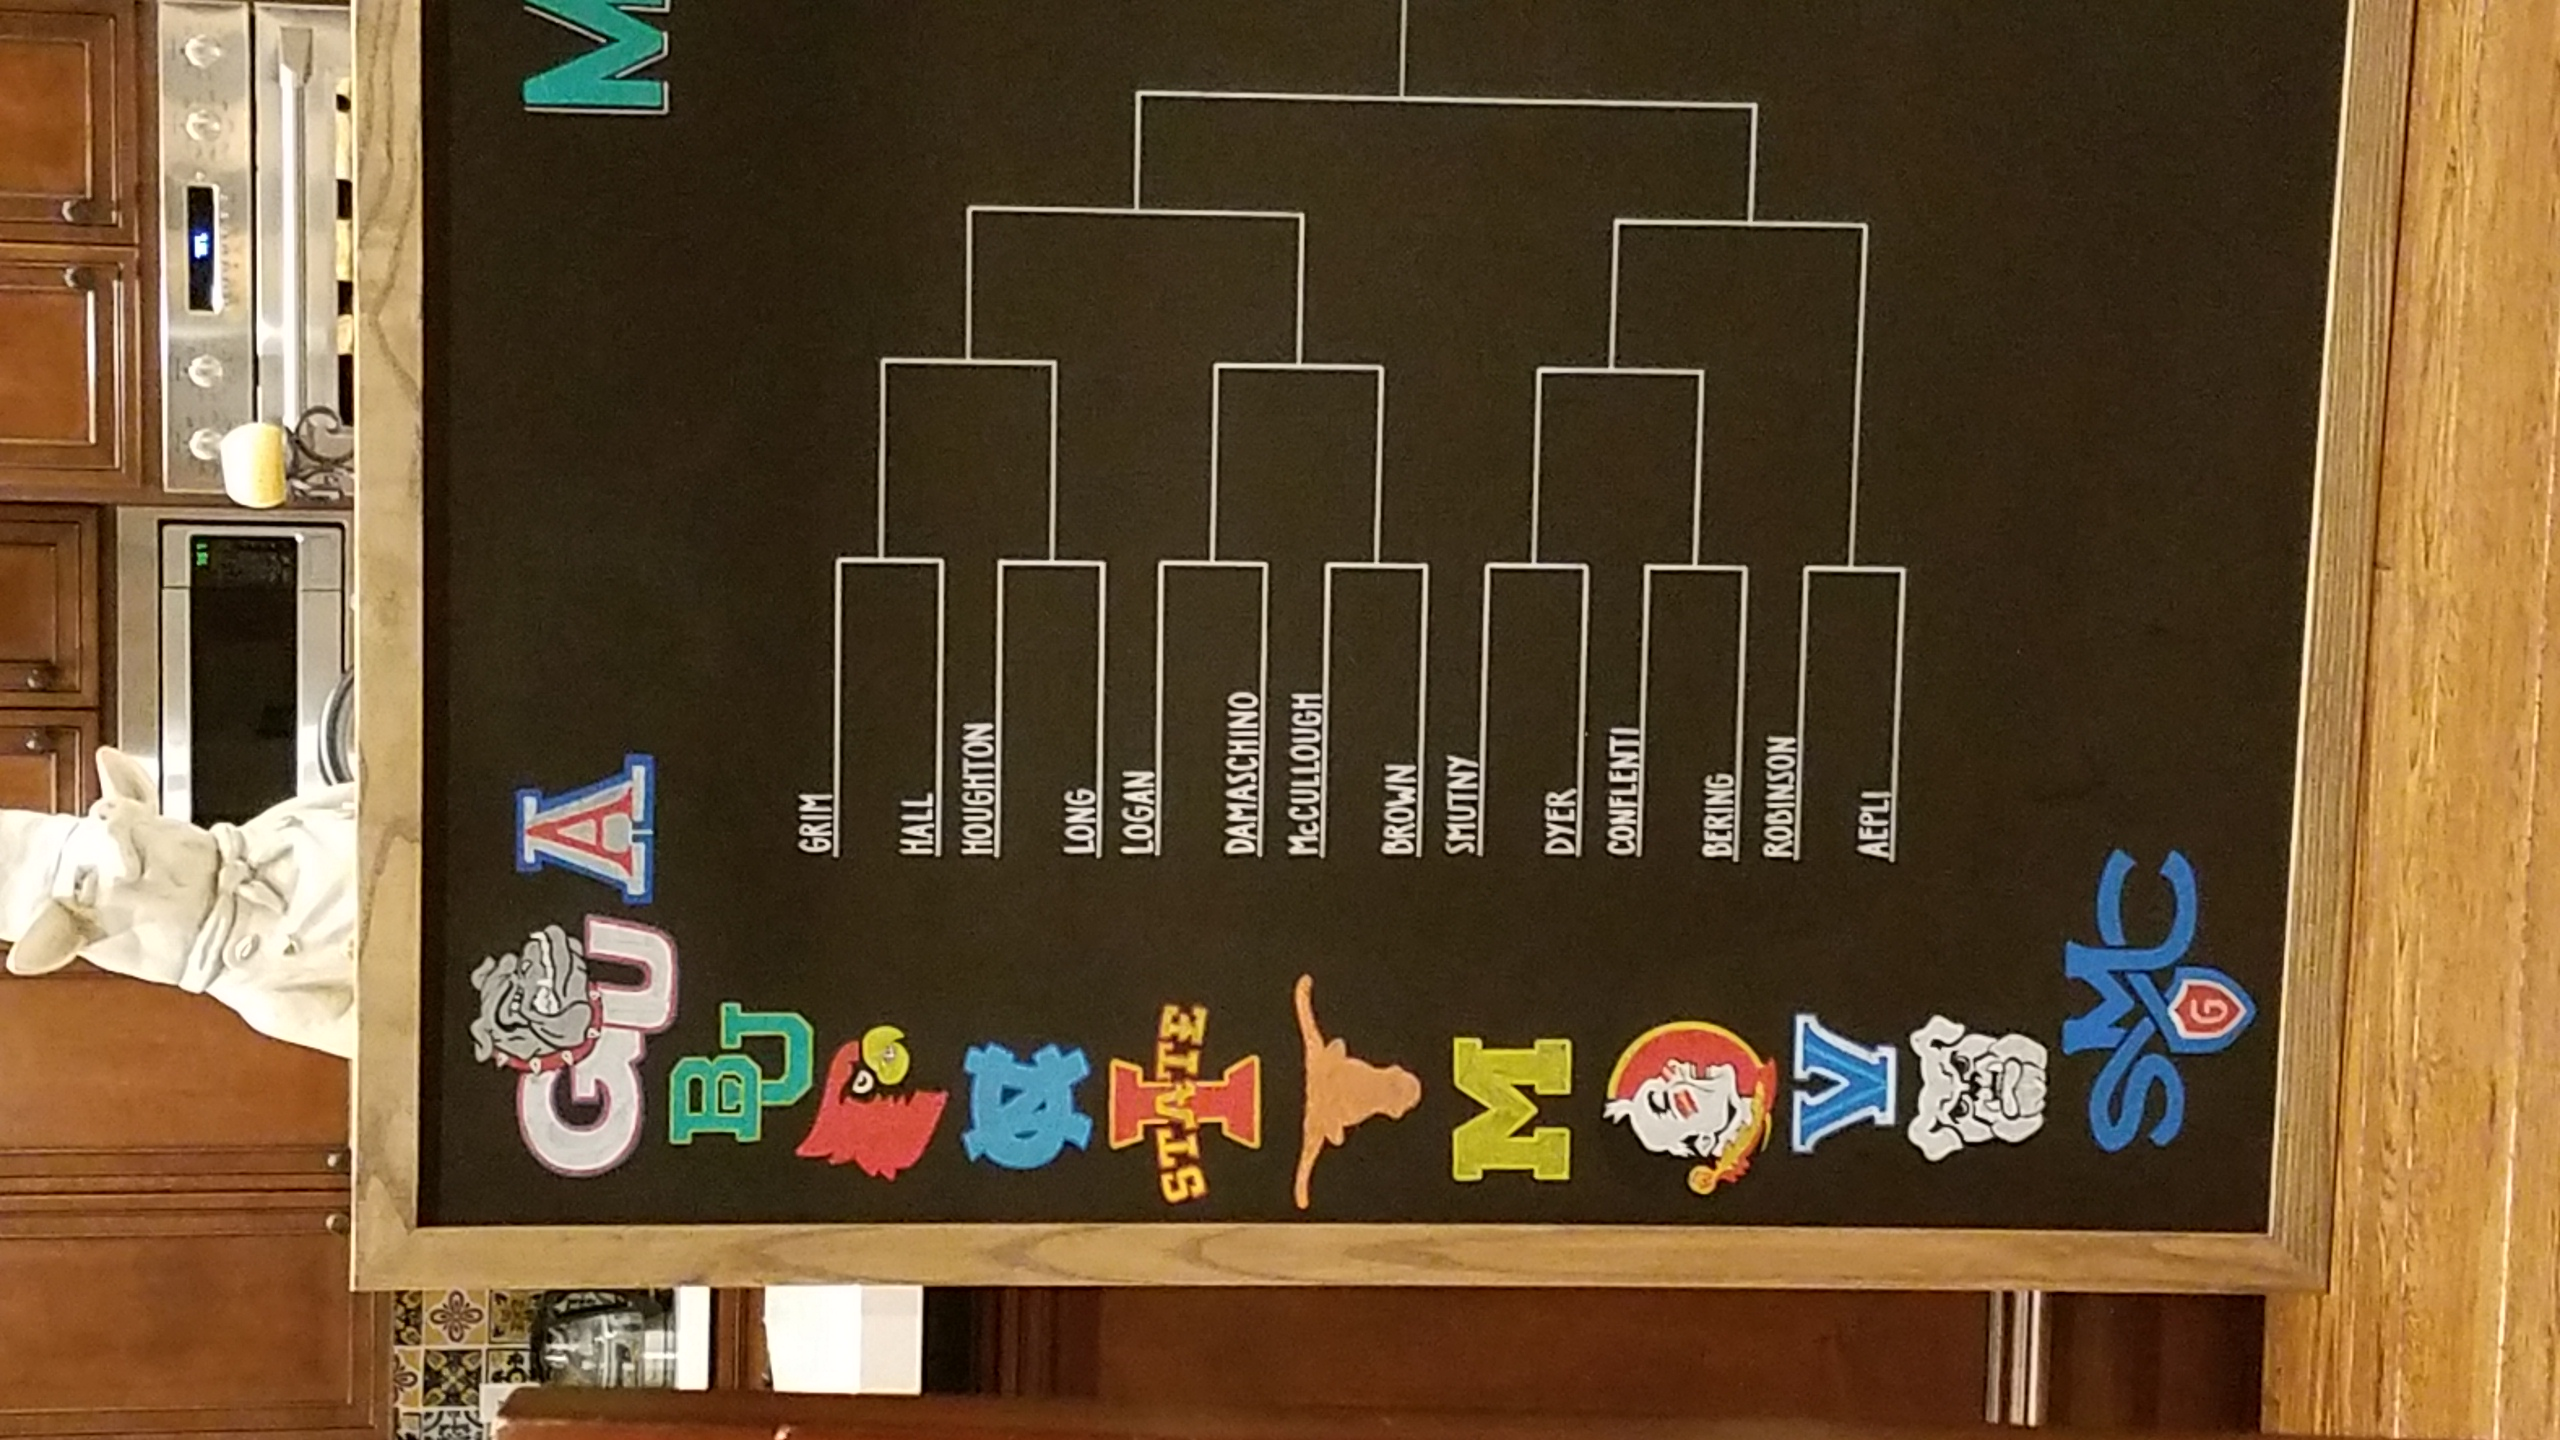 March Madness Board (Left)